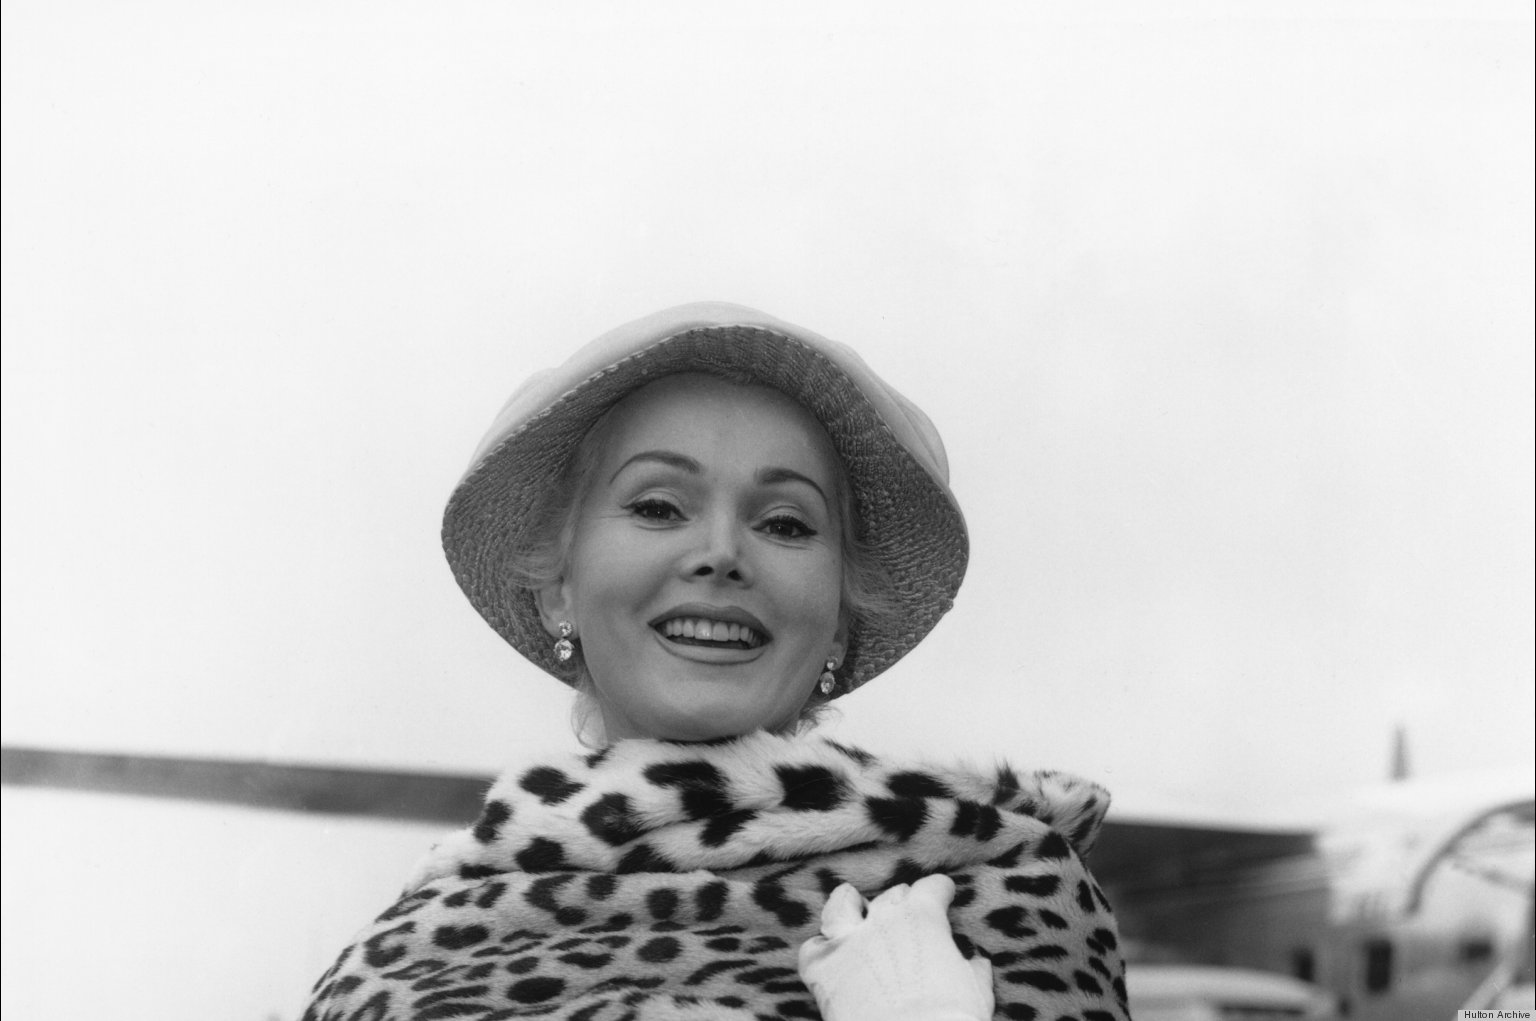 Zsa Zsa Gabor Quotes Zsa Zsa Gabor Sells Home For $11 Million Although She Can Stay